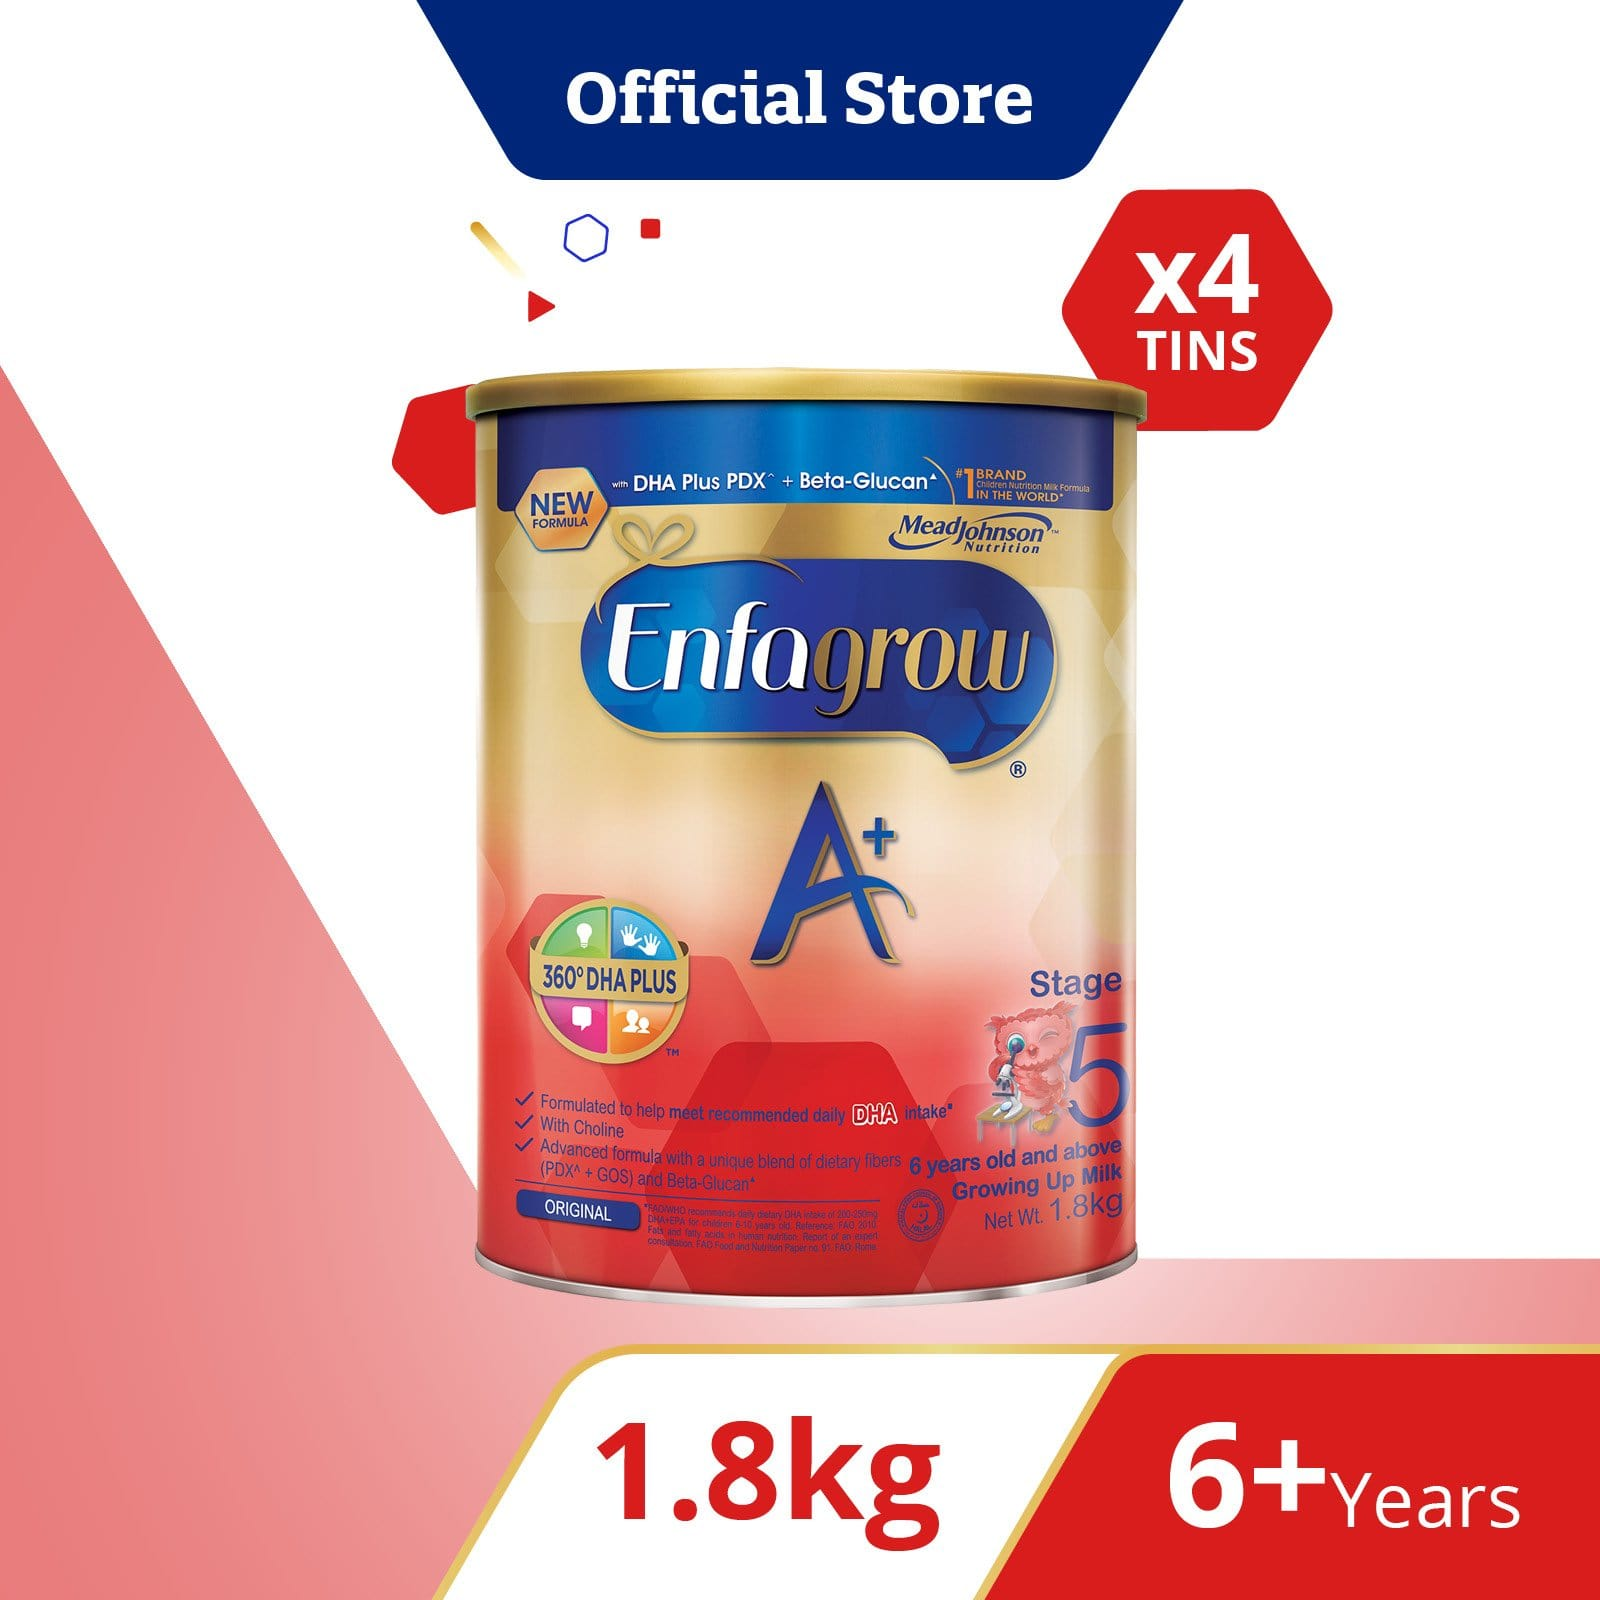 Enfagrow A+ Stage 5 (1.8kg) Bundle of 4